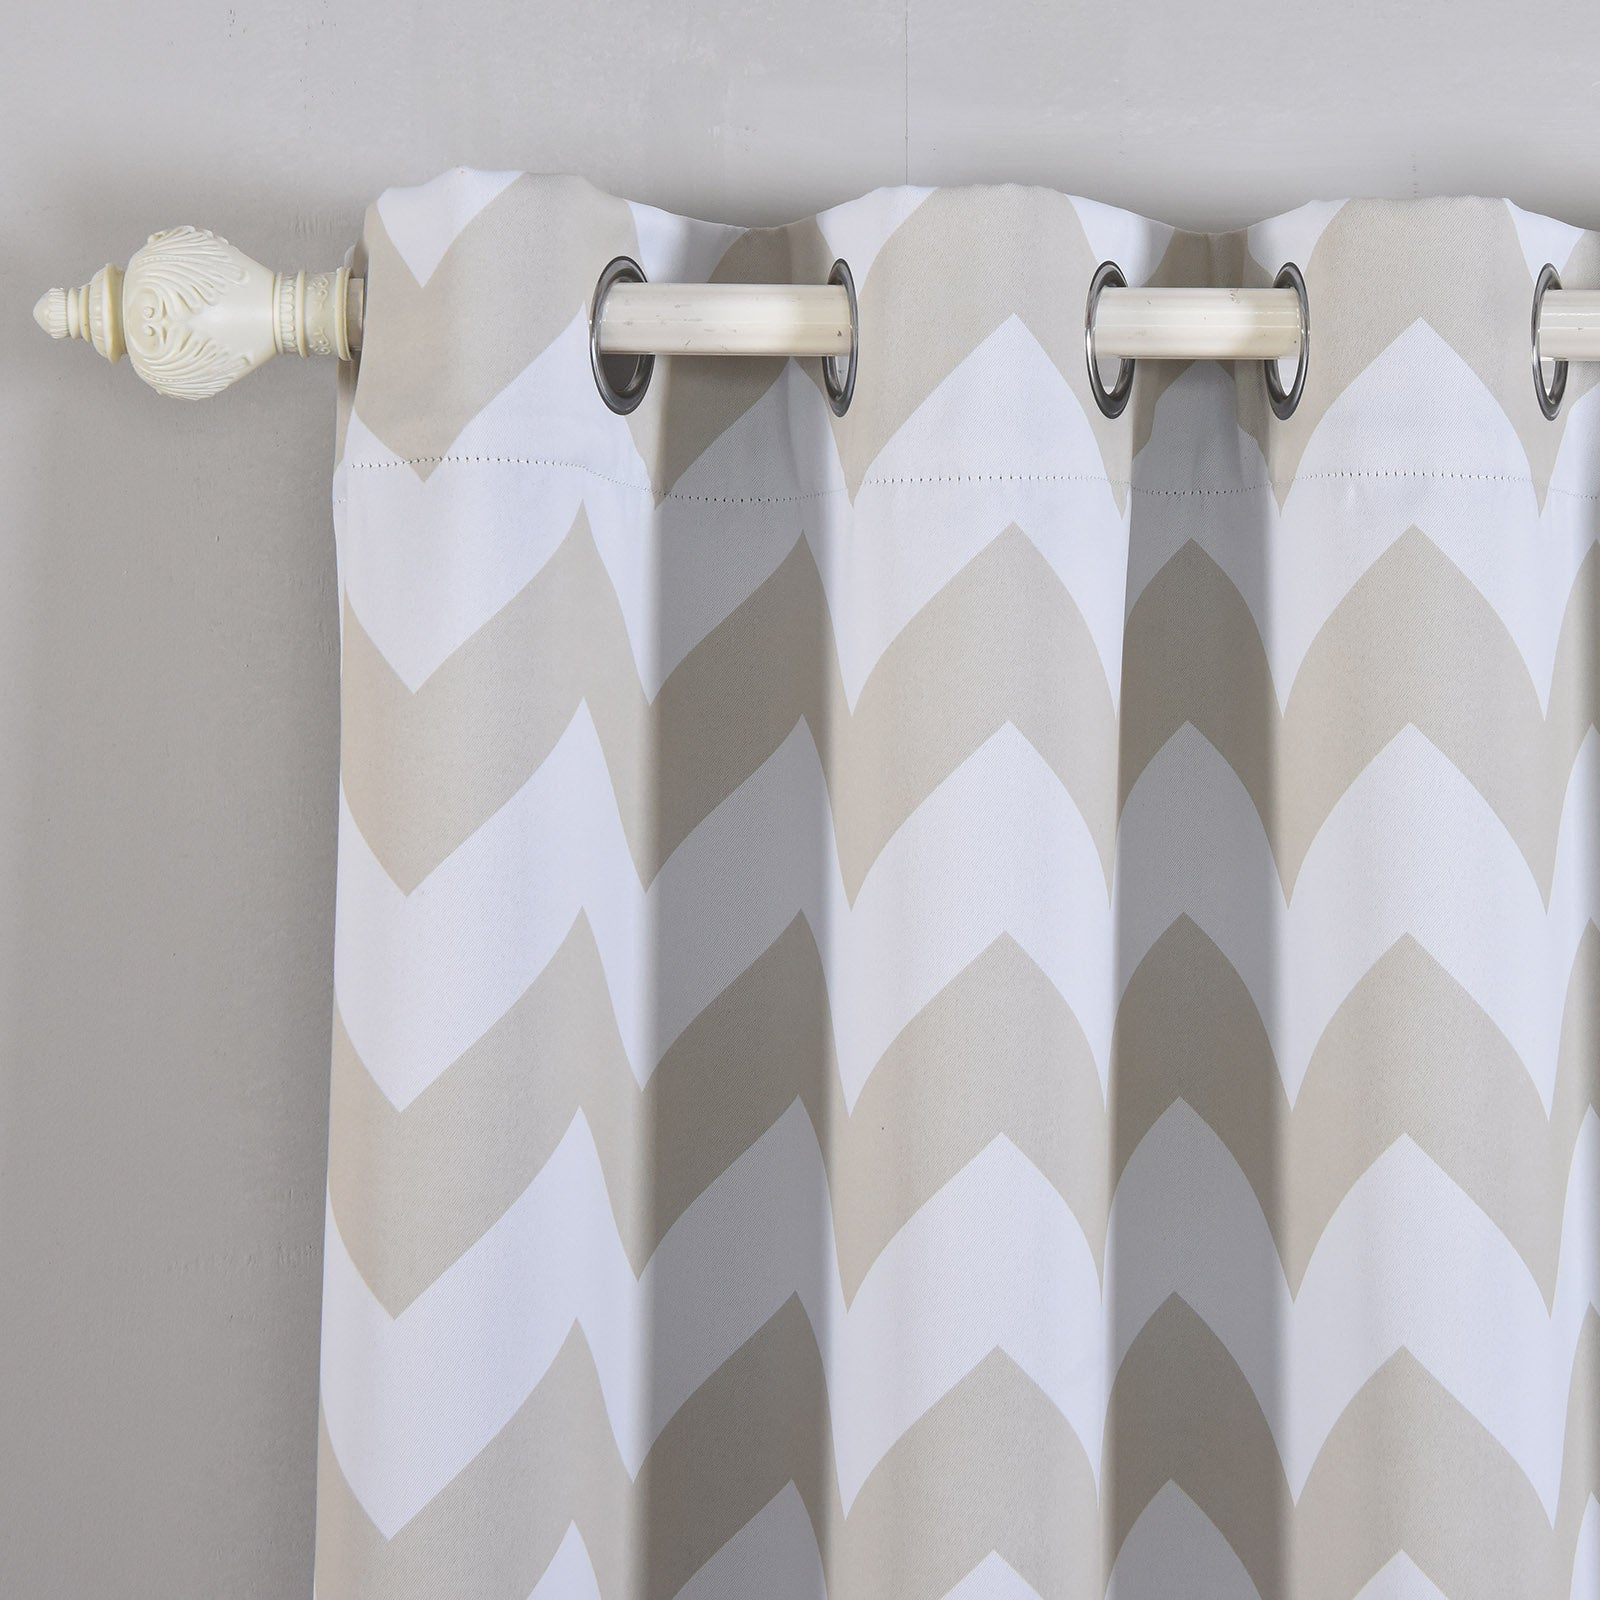 Blackout Curtains 52x108 White Silver Chevron Design Pack Of 2 Thermal Insulated With Chrome